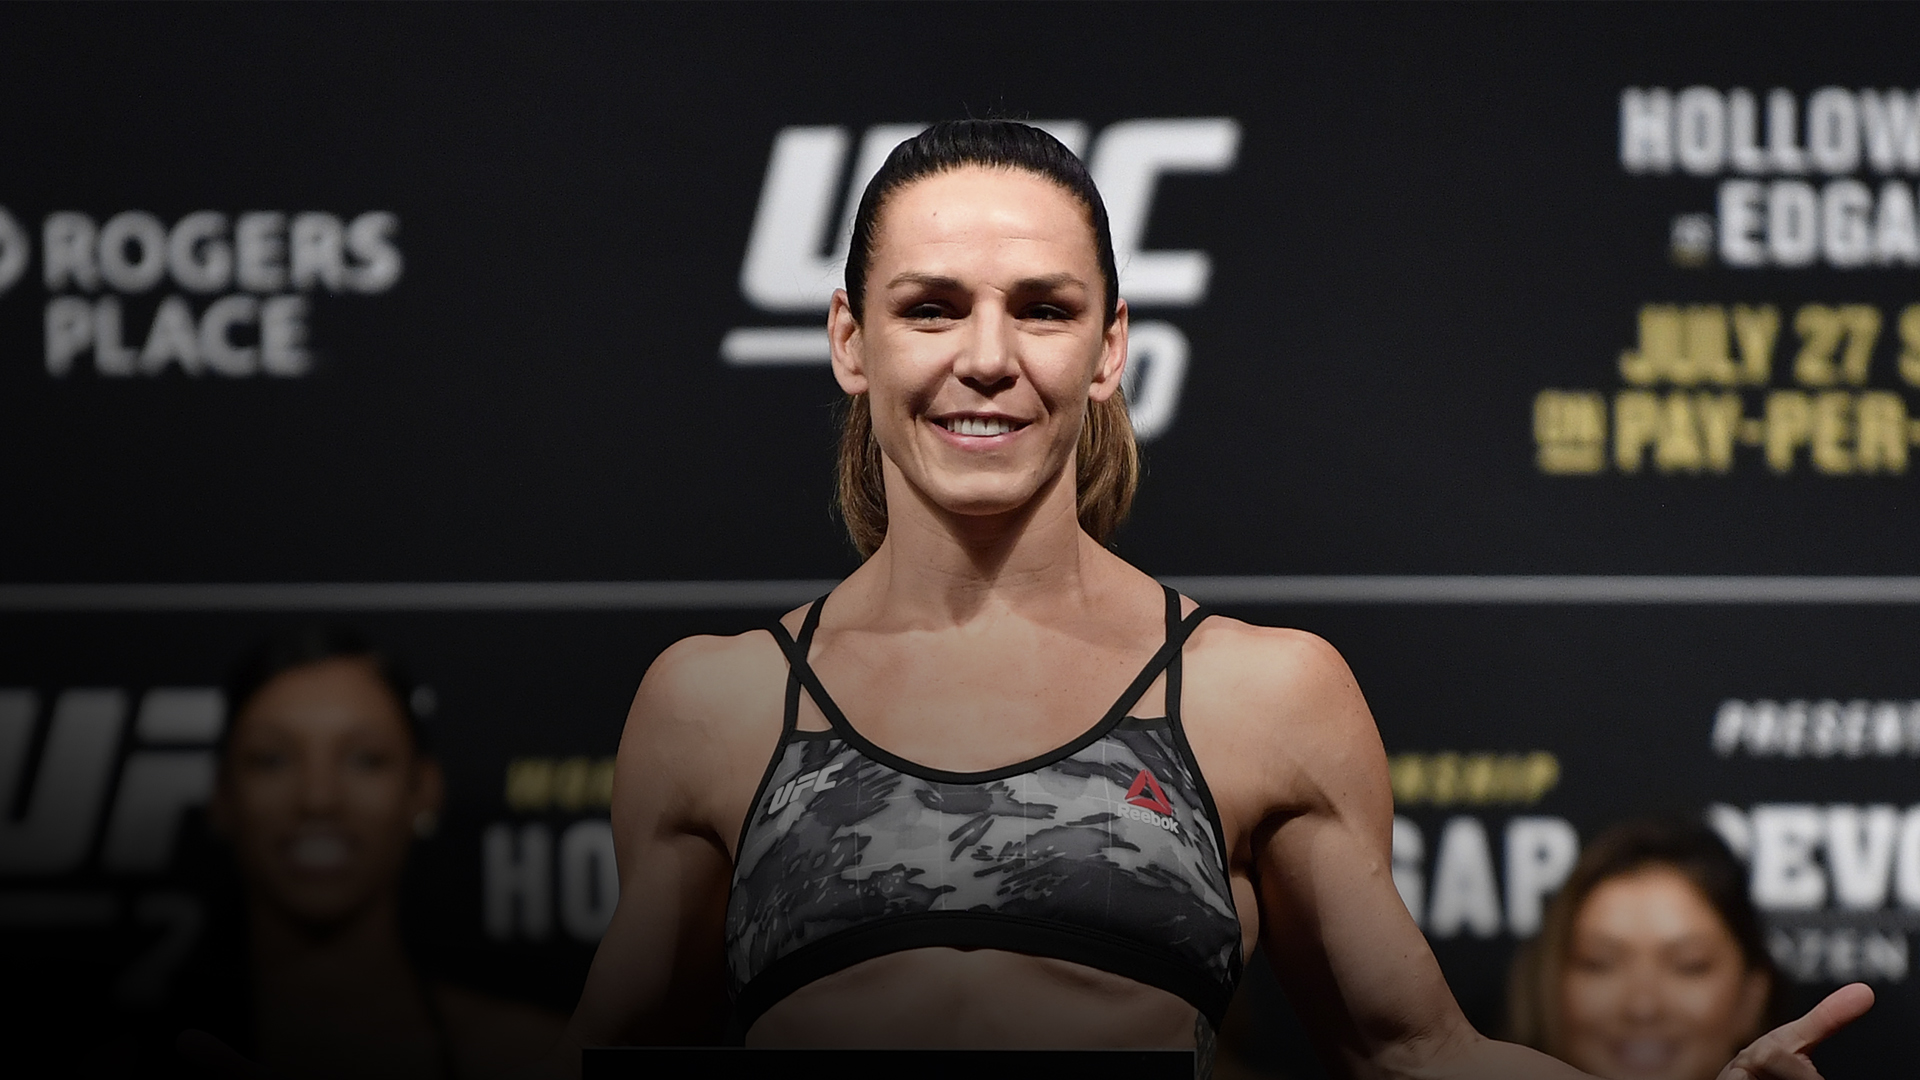 Alexis Davis of Canada poses on the scale during the UFC 240 weigh-in at Rogers Place on July 26, 2019 in Edmonton, Alberta, Canada. (Photo by Jeff Bottari/Zuffa LLC